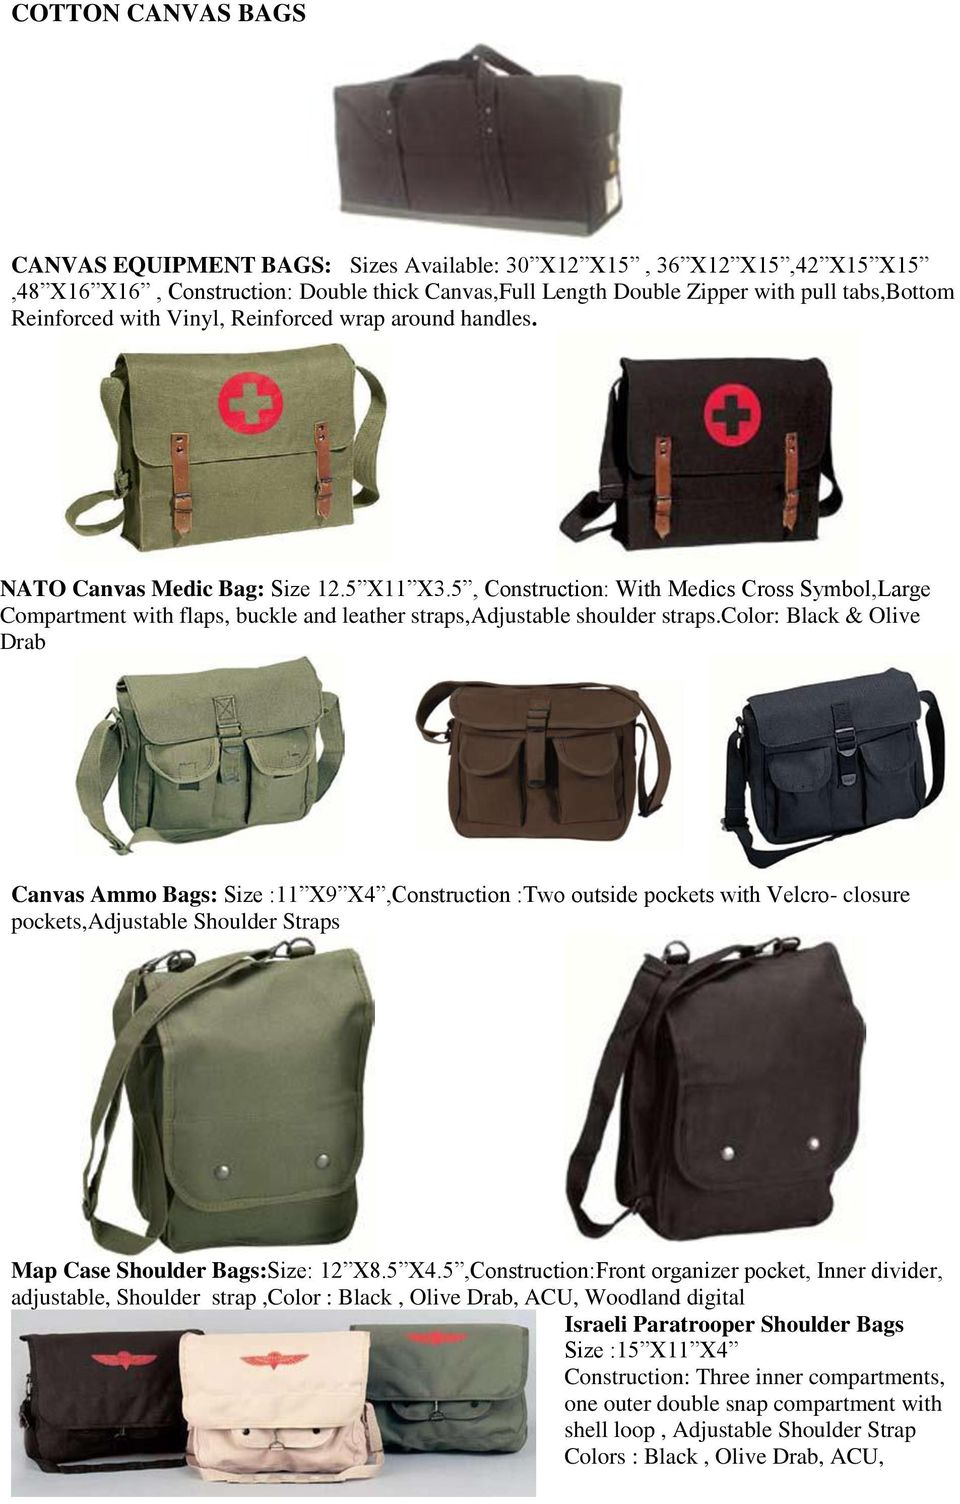 5, Construction: With Medics Cross Symbol,Large Compartment with flaps, buckle and leather straps,adjustable shoulder straps.